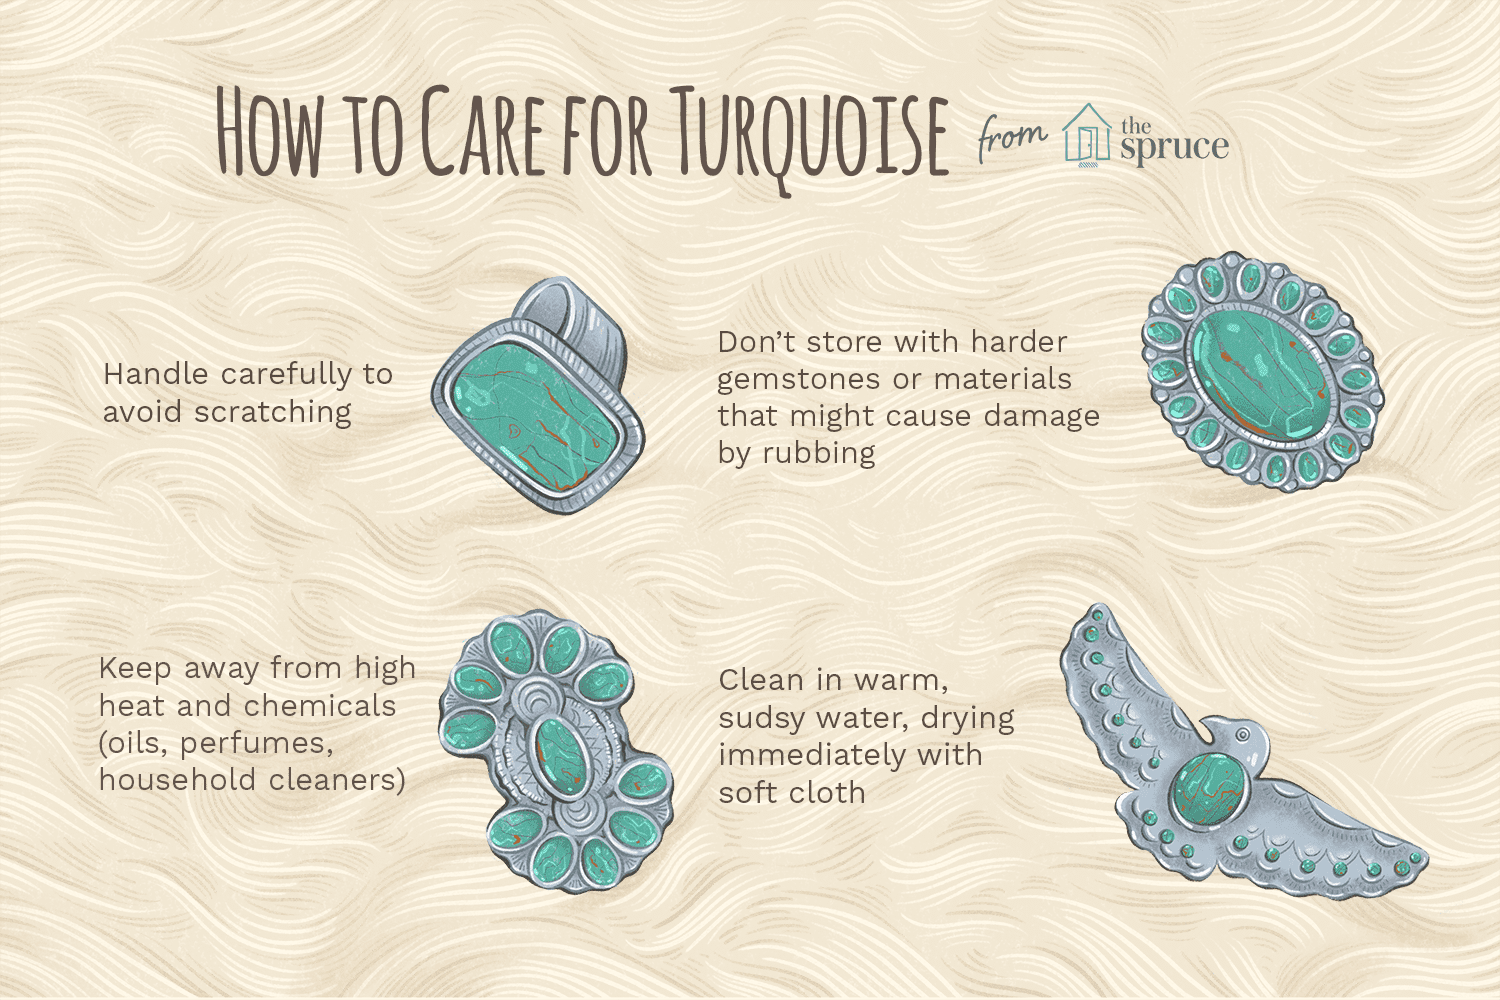 How to care for turquoise illustration